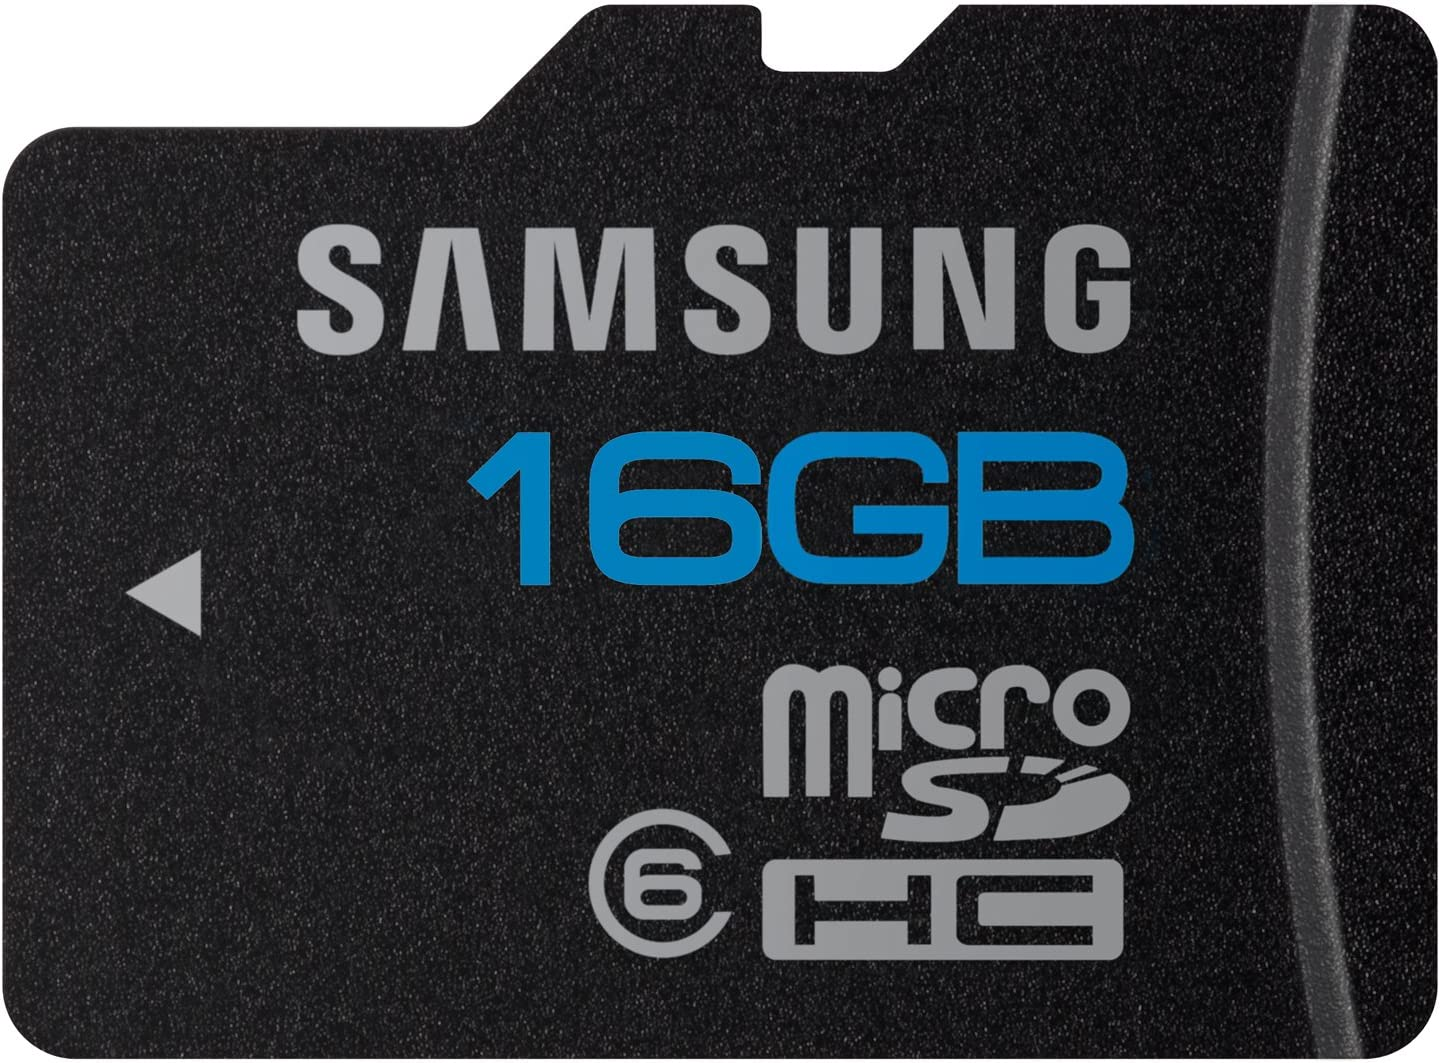 Professional Kingston 16GB MicroSDHC Samsung Galaxy S6 Active with custom formatting and Standard SD Adapter! 32Mbps // Class 4